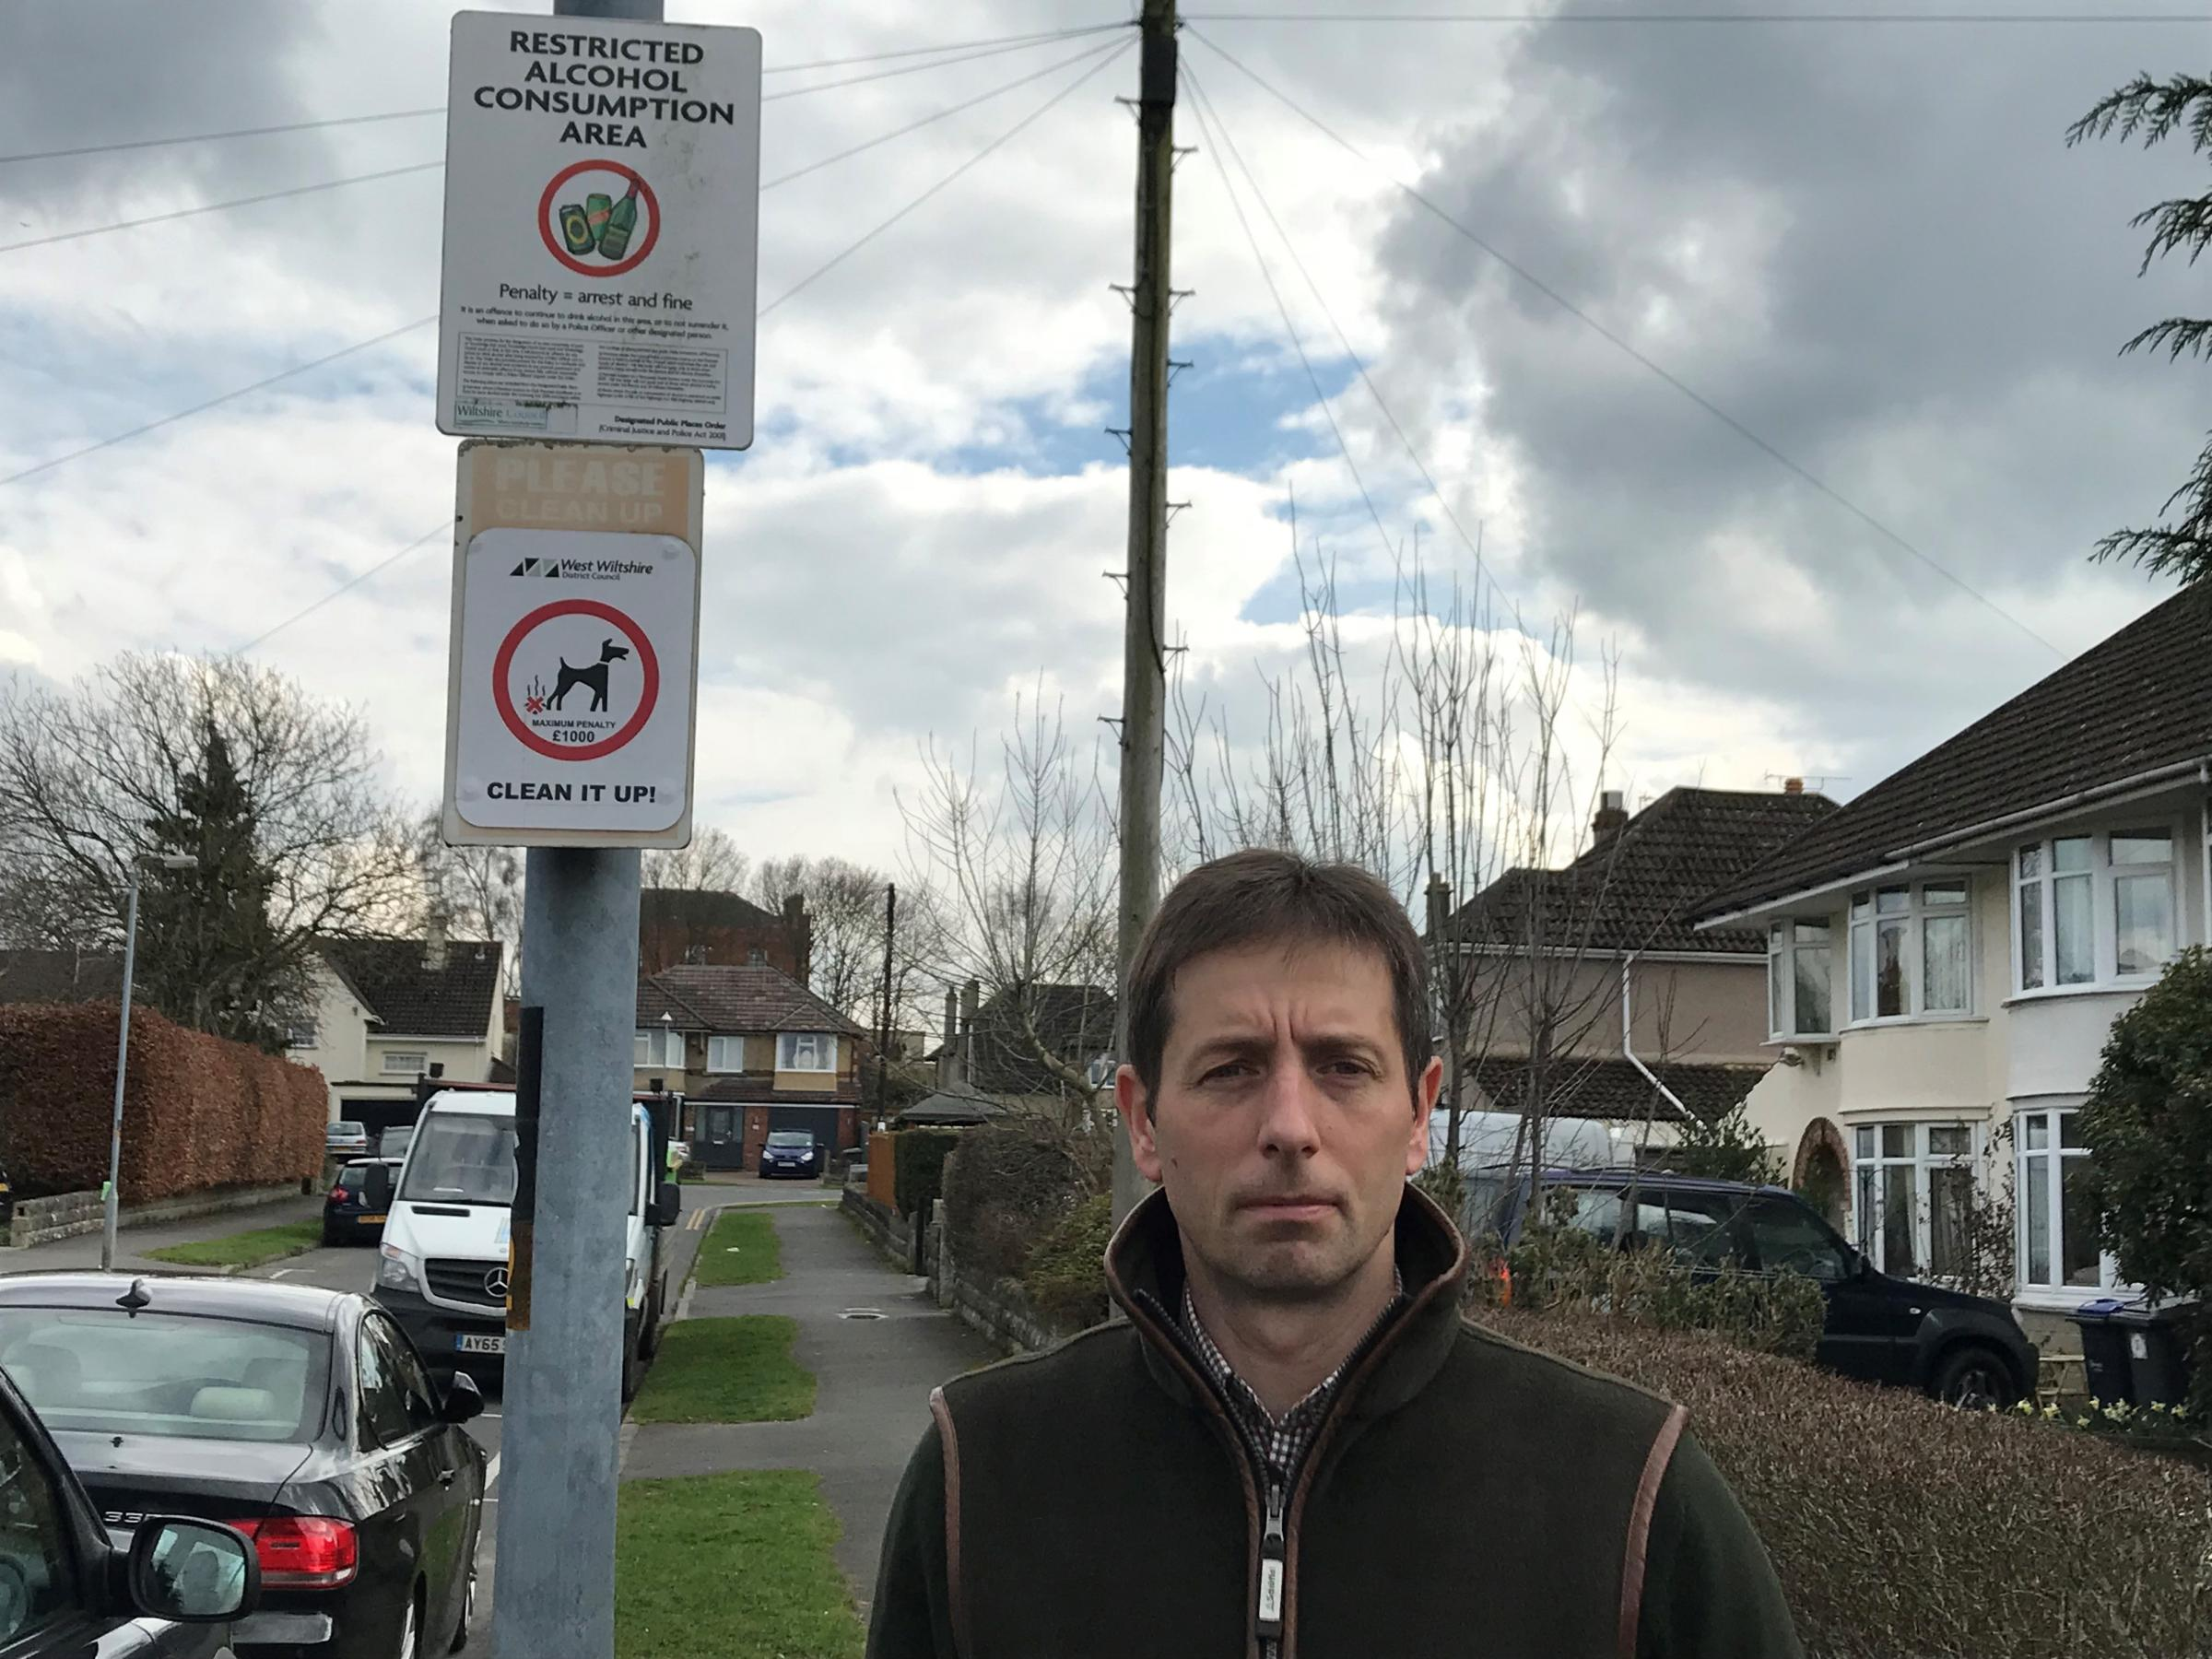 Cllr Edward Kirk is very concerned about people not picking up dog waste.